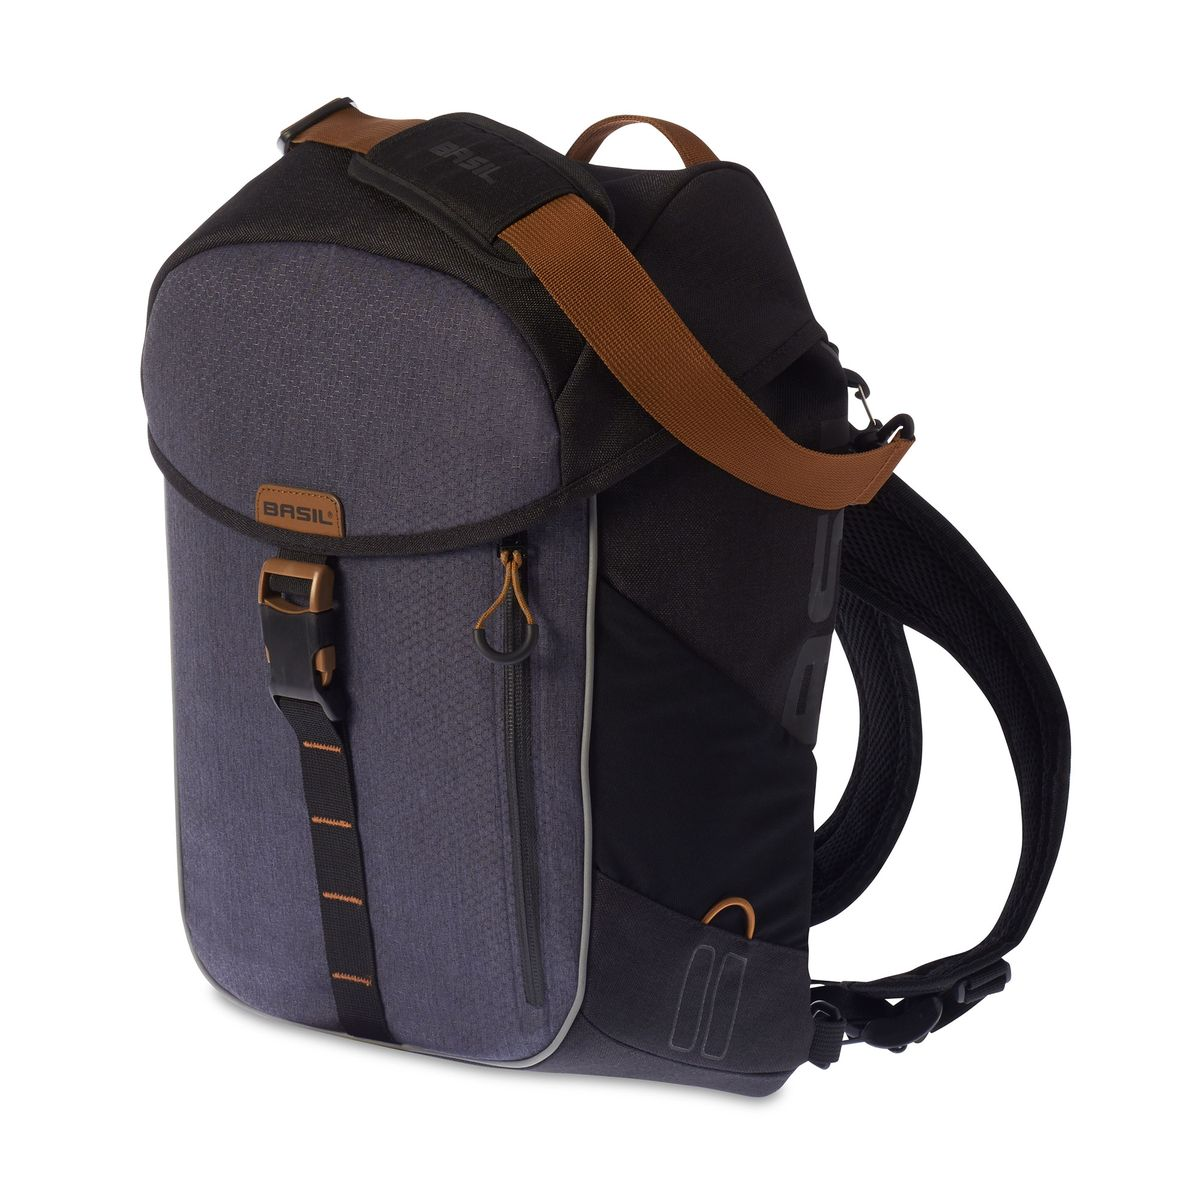 MILES DAYPACK single pannier bag